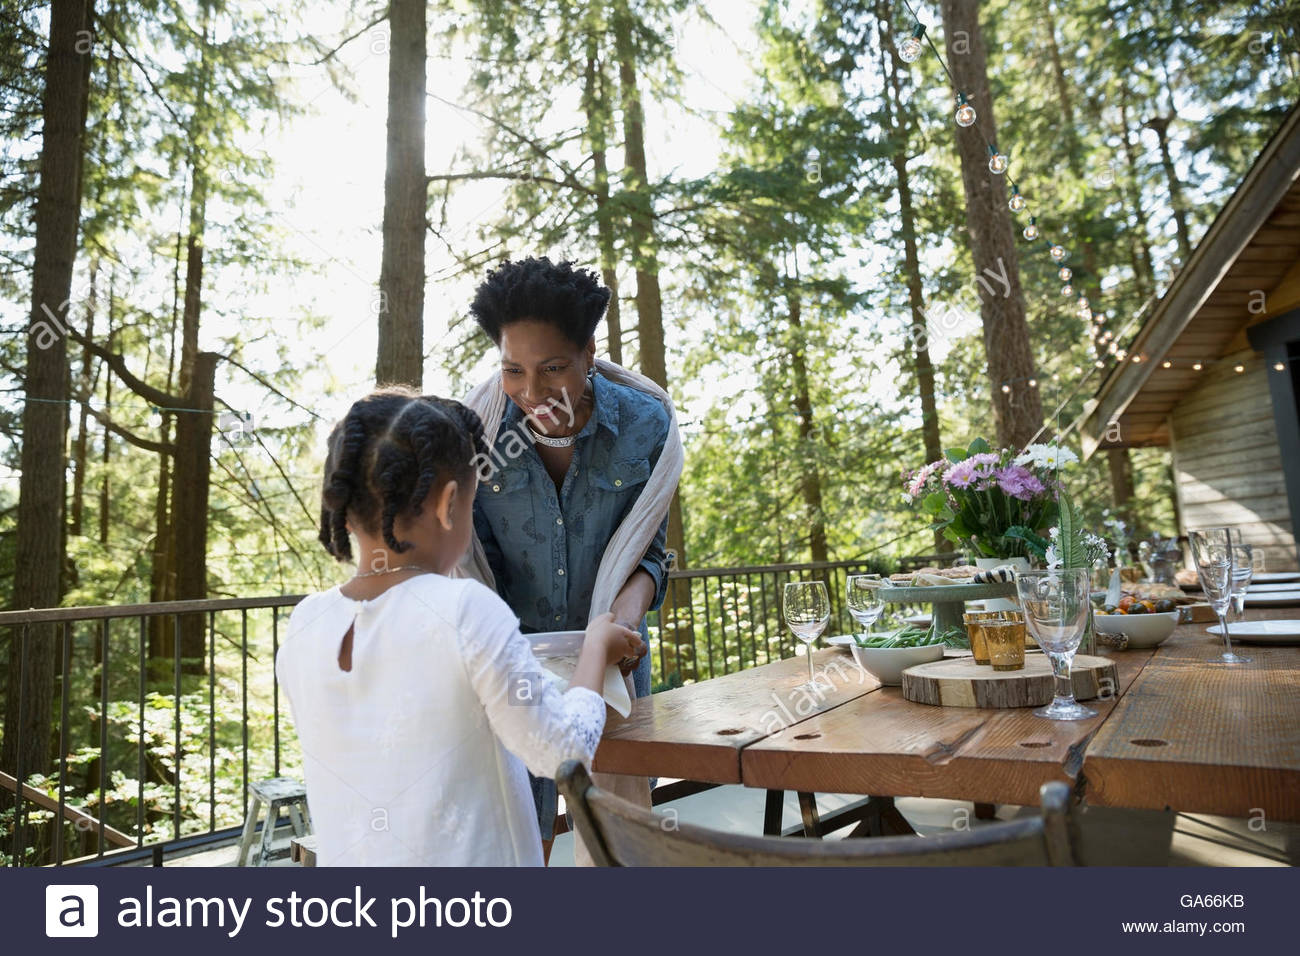 Granddaughter helping grandmother prepare dinner party on cabin balcony in woods - Stock Image